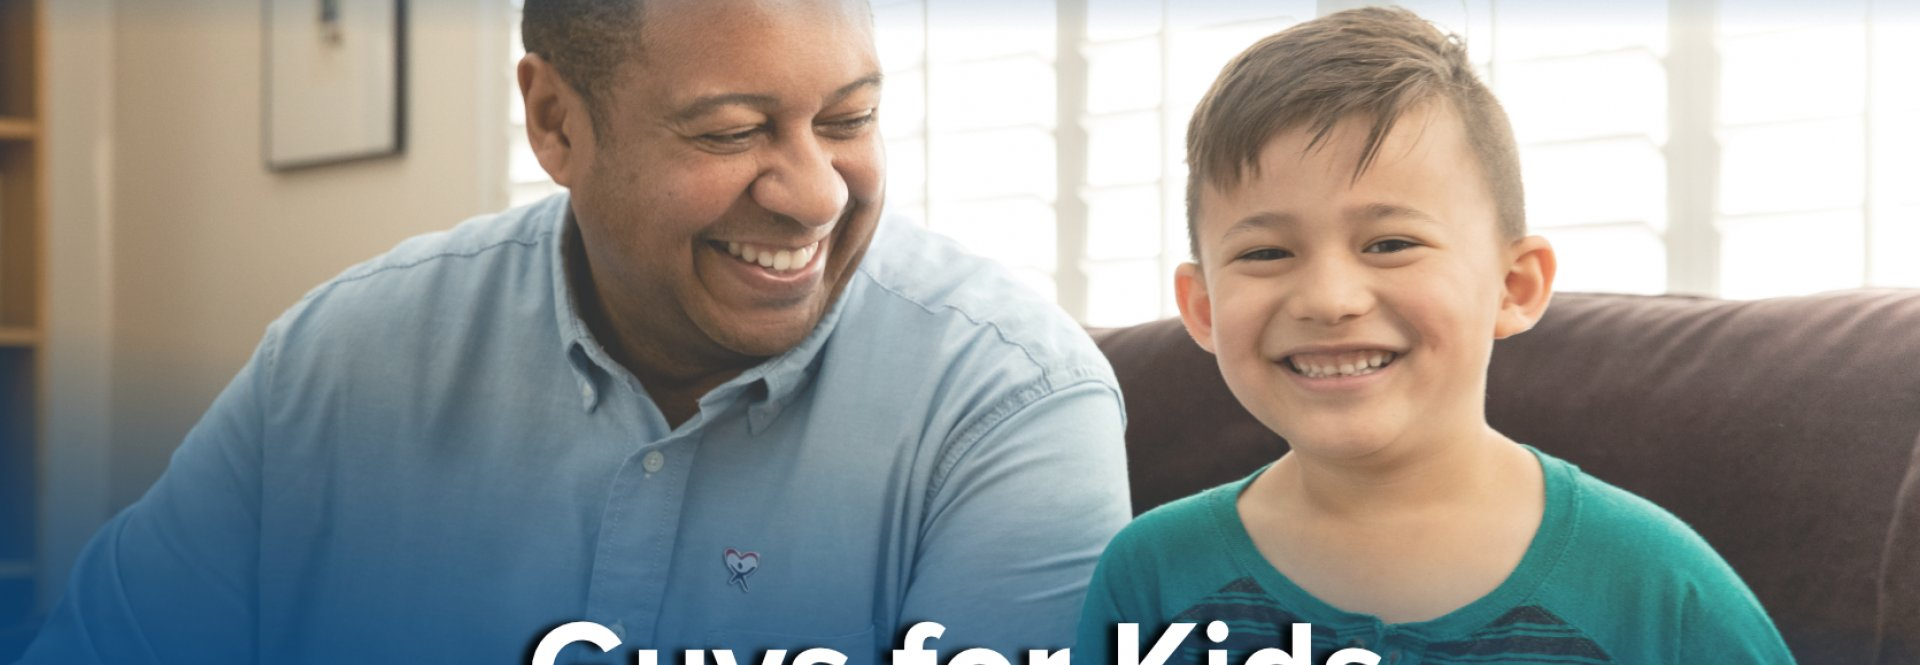 Guys for kids website banner, male adult CASA volunteer with male child. Volunteer Recruitment Event For Winnebago County CASA : GUys for kids